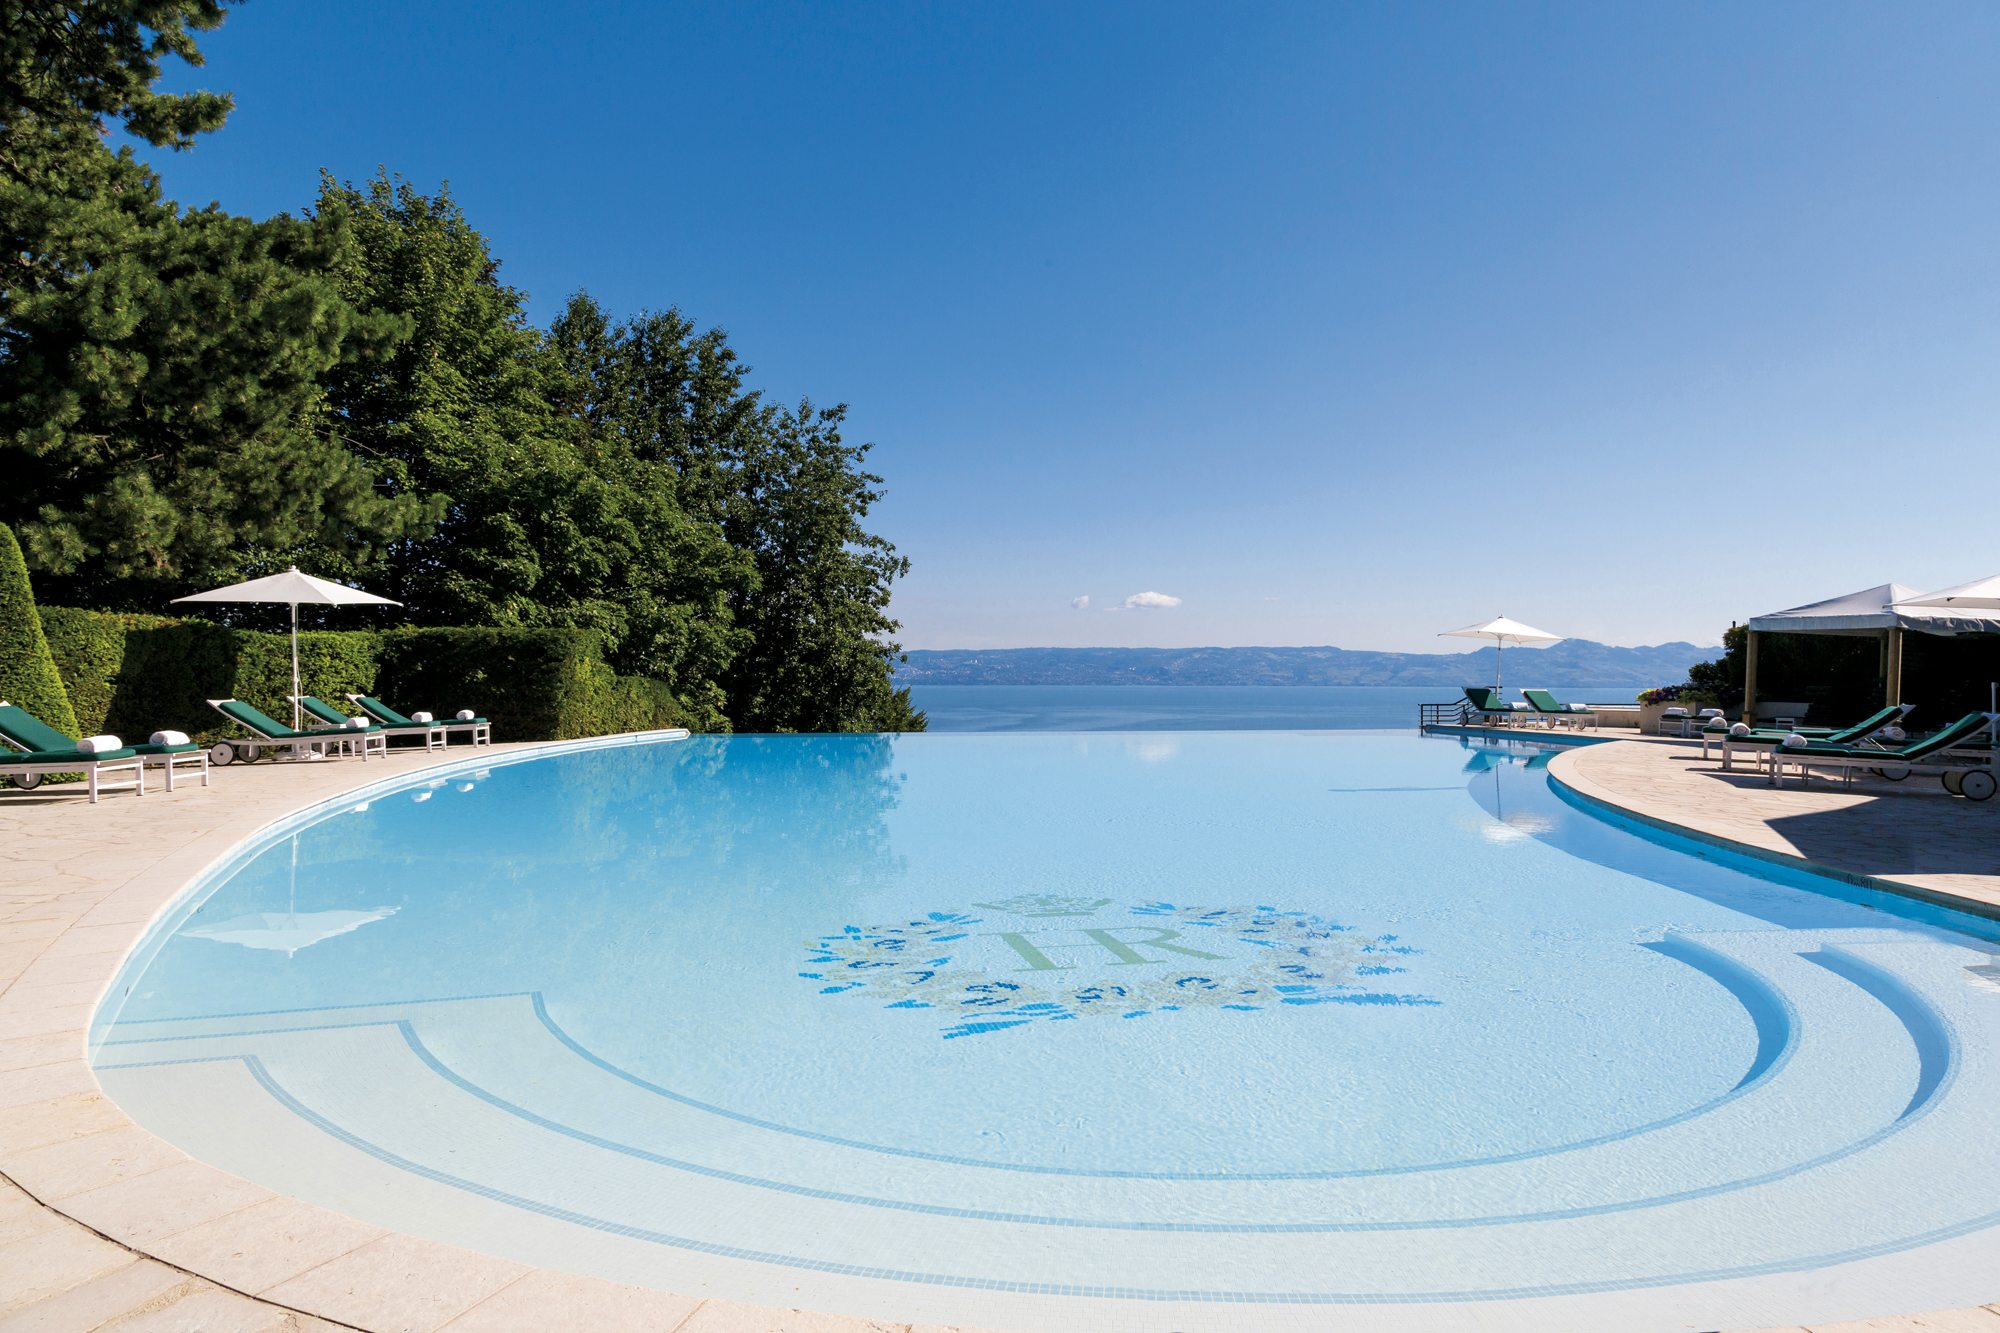 Hotel Royal in Evian, France (2019) - 5 Star Hotel for Families